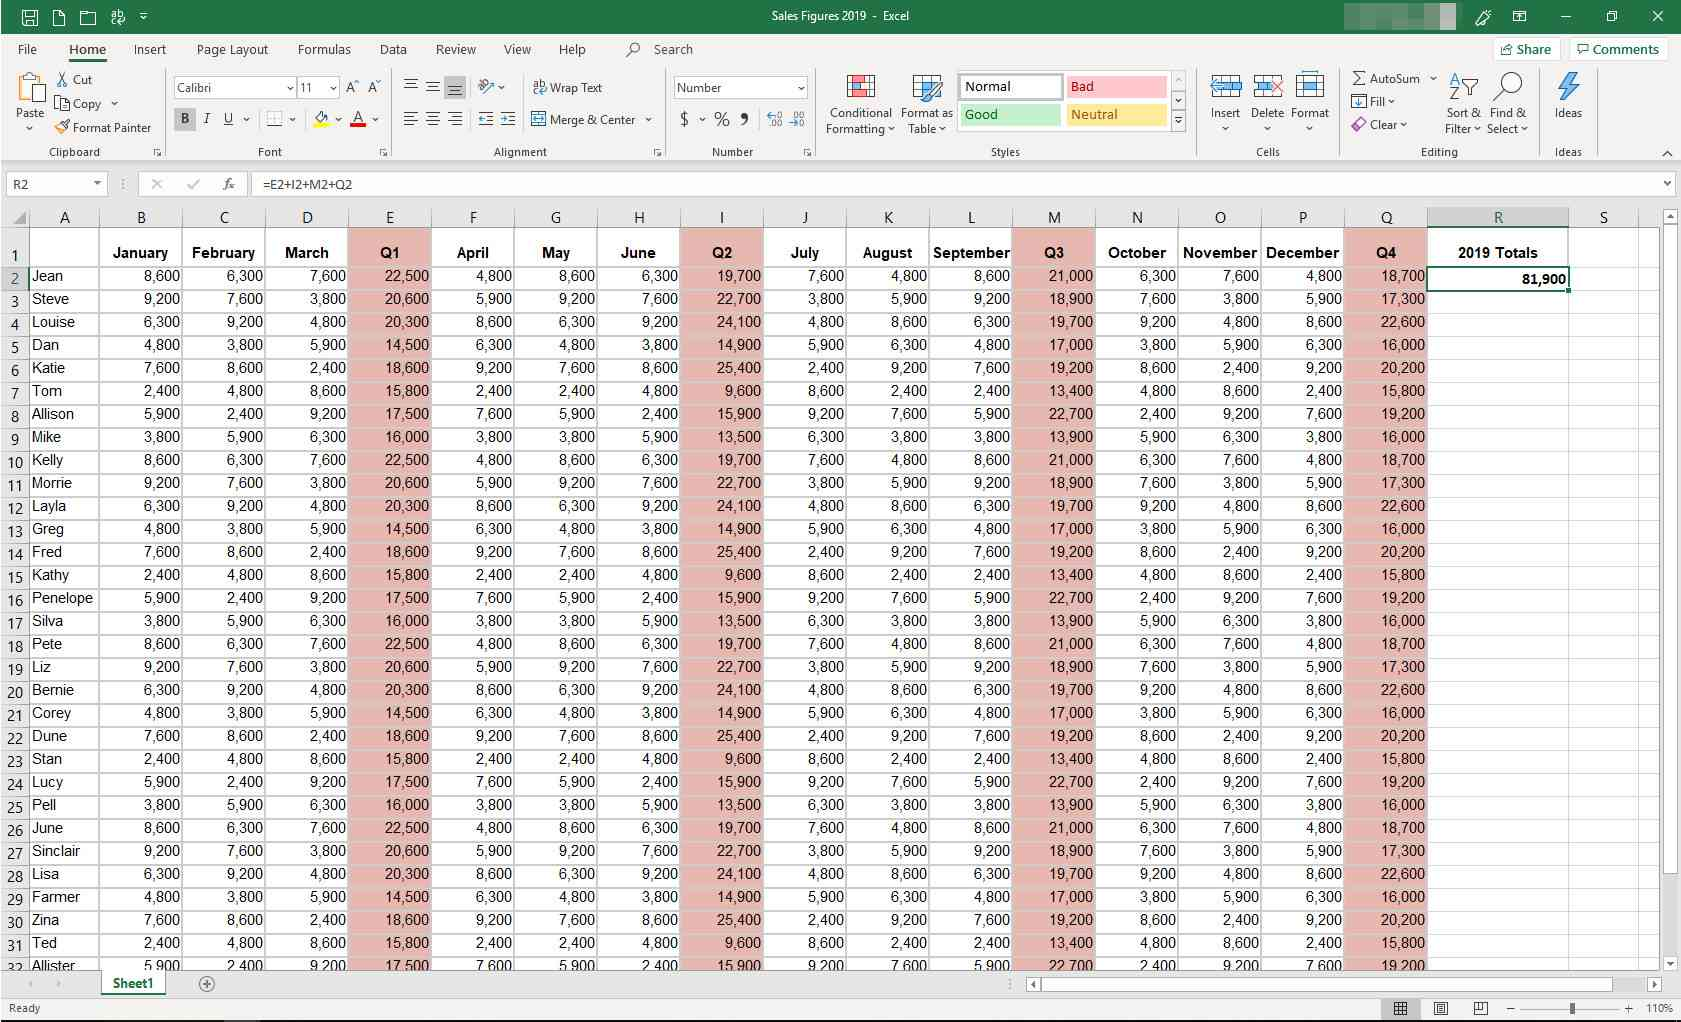 MS Excel with new formula displayed